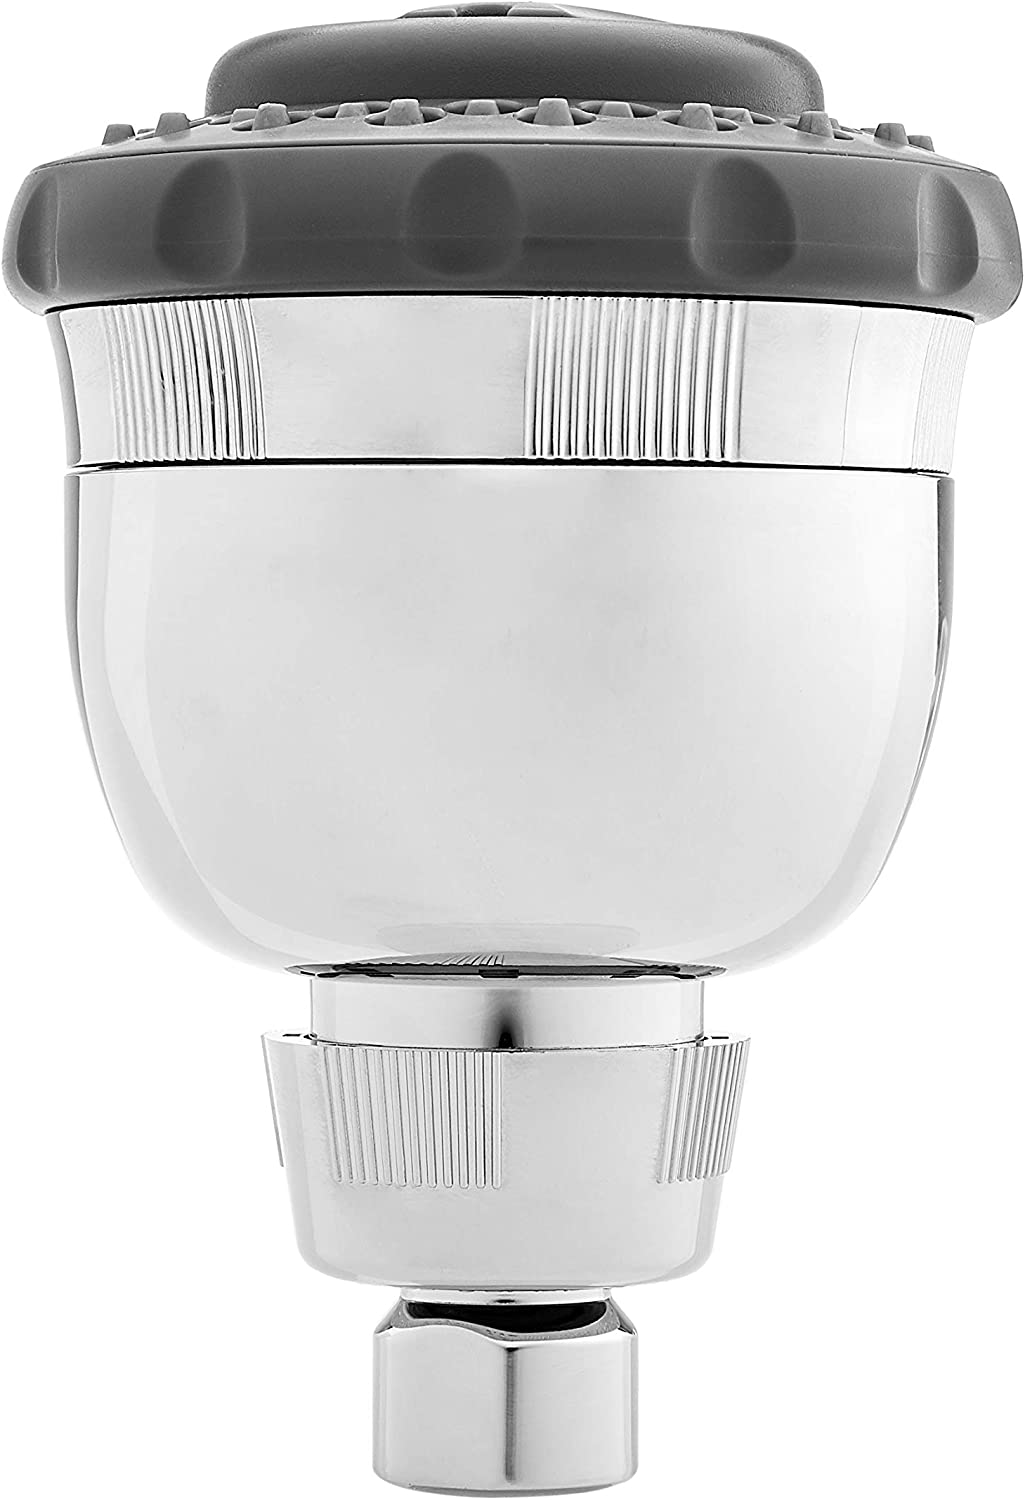 Basics Hand Held Chrome Shower Filter System with Massage Equivalent to Culligan HSH-C135